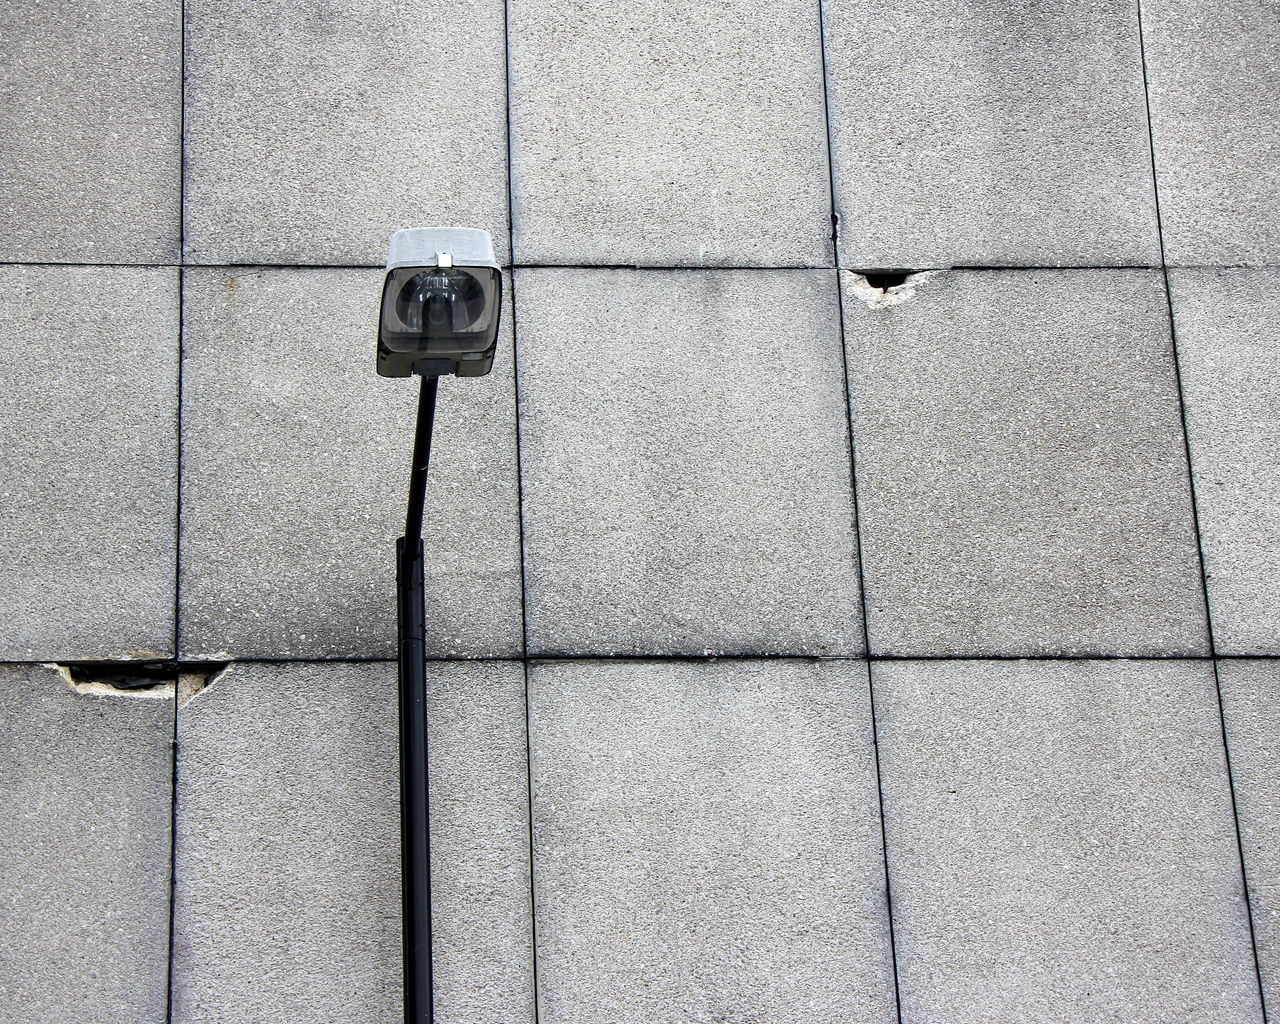 Architecture Big Brother - Orwellian Concept Broken Brutalist Concrete Concrete Jungle Cracked Day Grey Lamp Post Lamppost No People Outdoors Pattern Security Camera Textured